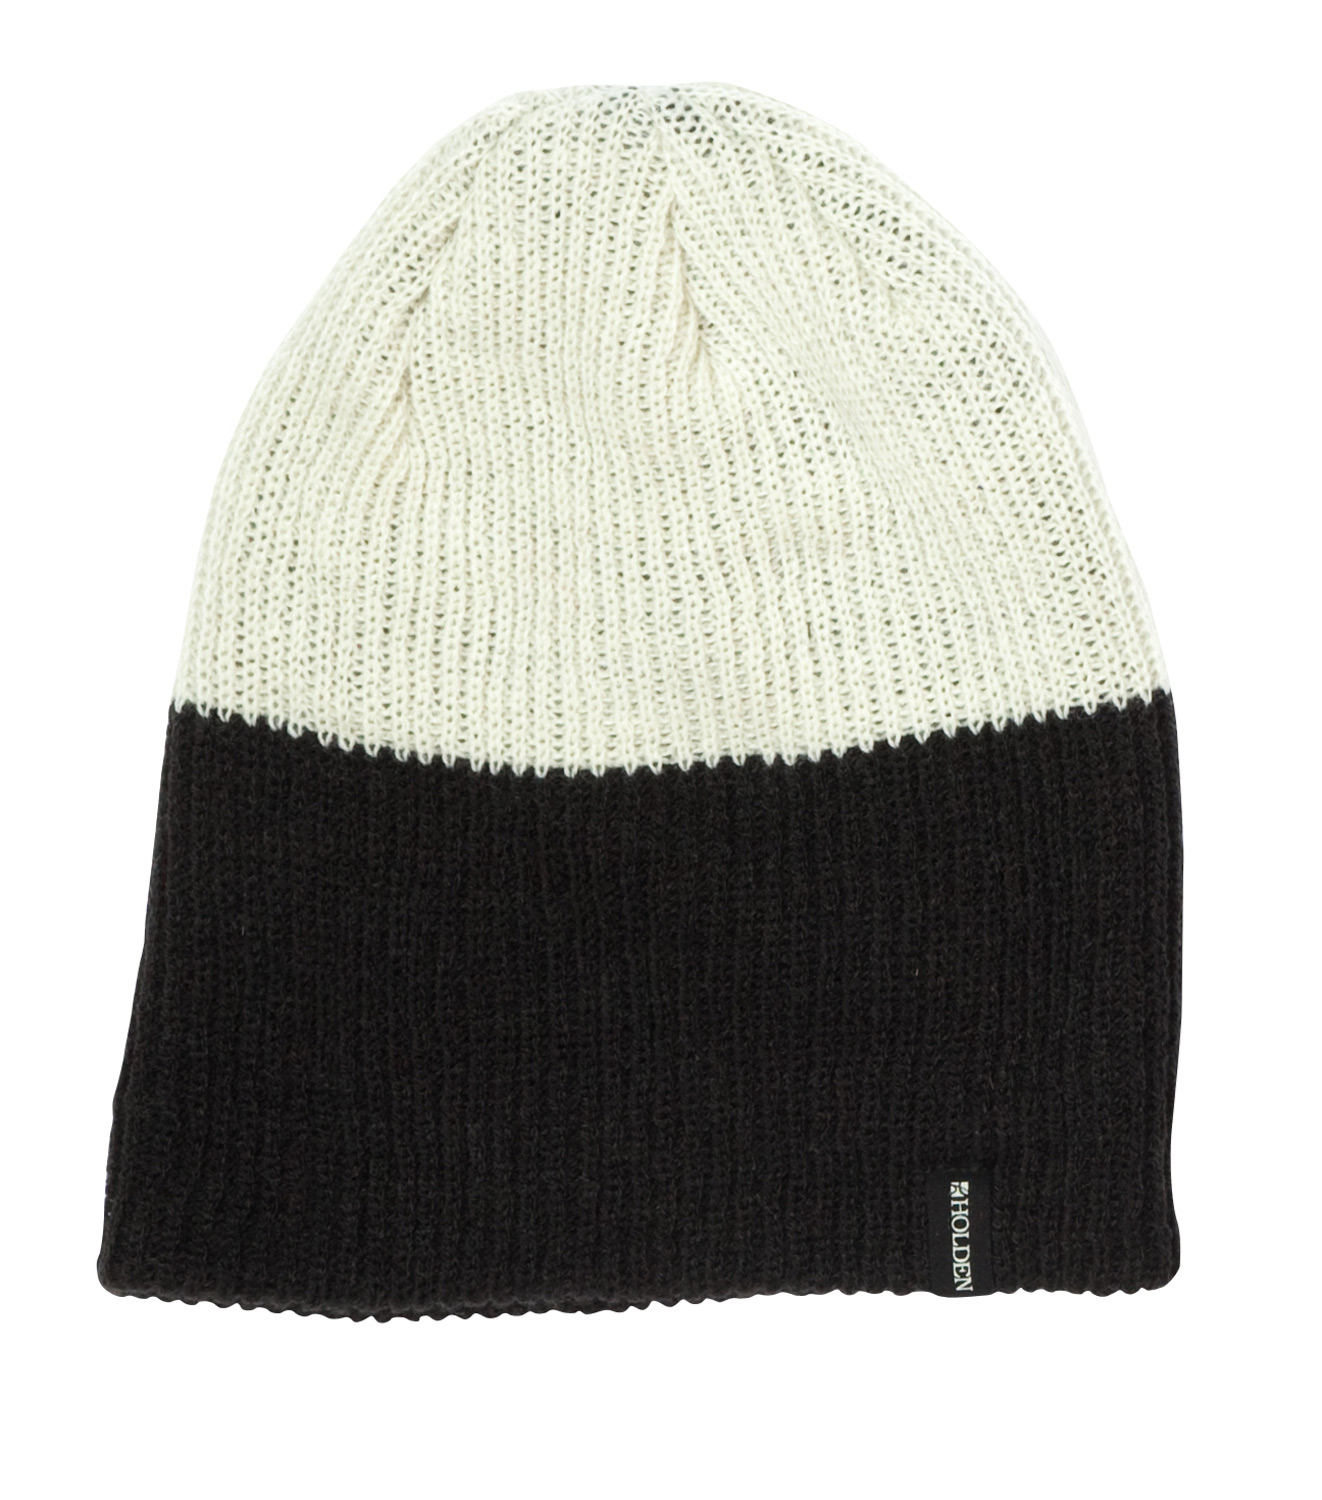 It's important to keep your head no matter what task you have ahead of you and doing it in a Holden The Classic Beanie will be sure to keep everyone focused on you. The Holden beanie is 100% acrylic and can be just the look you want whether you're strolling around town or flying down the mountain on your snowboard. This knit beanie has a skull fit and is helmet-compatible. Get that added touch of comfort and style to finish off your look!  Modern fit, fine-knit ribbed beanie   Can be worn rolled up or down   100% Acrylic - $8.95